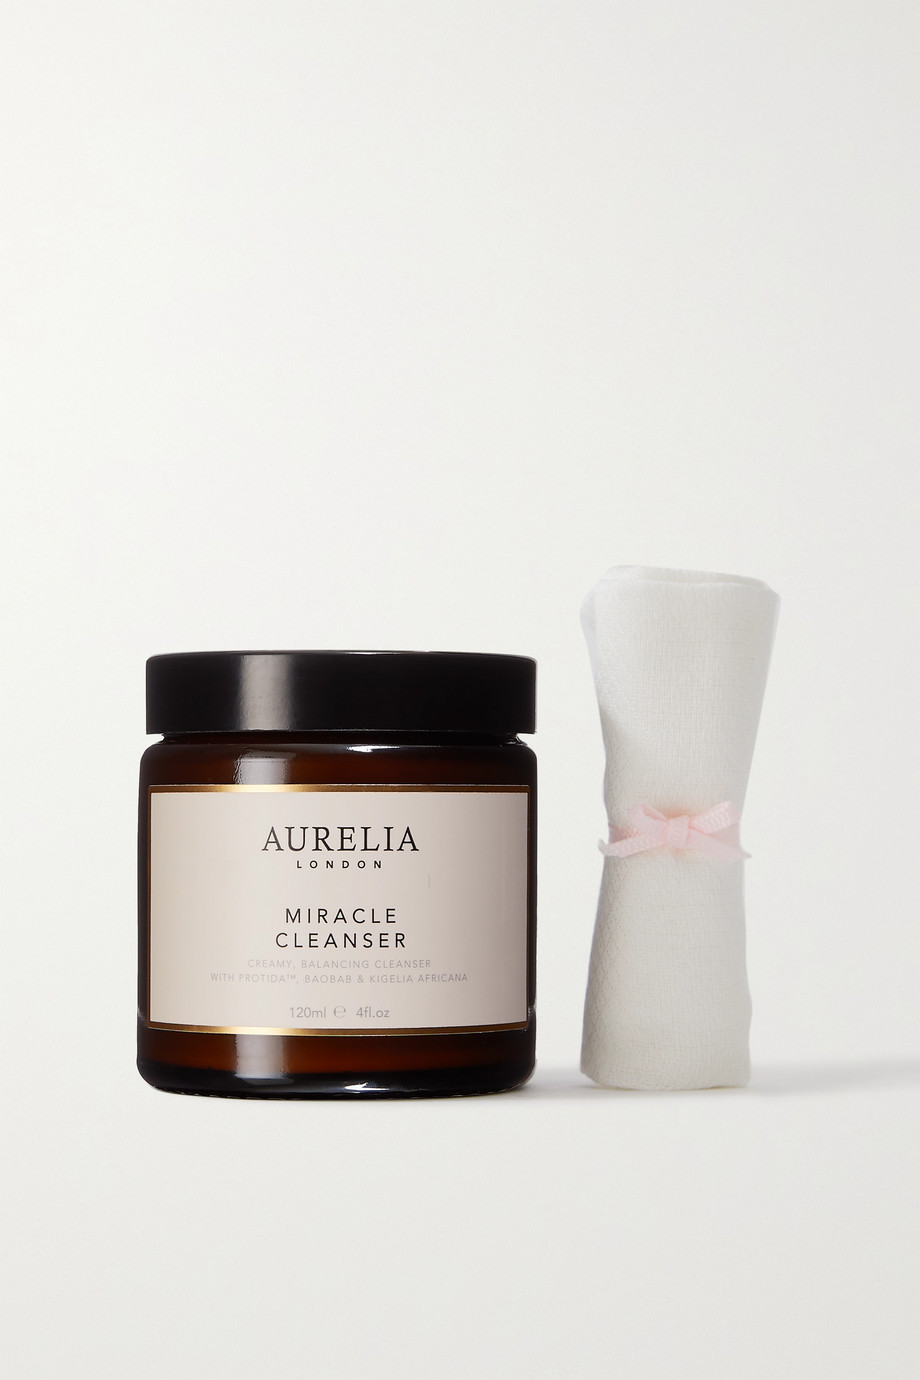 Miracle Cleanser, 120ml, by Aurelia Probiotic Skincare